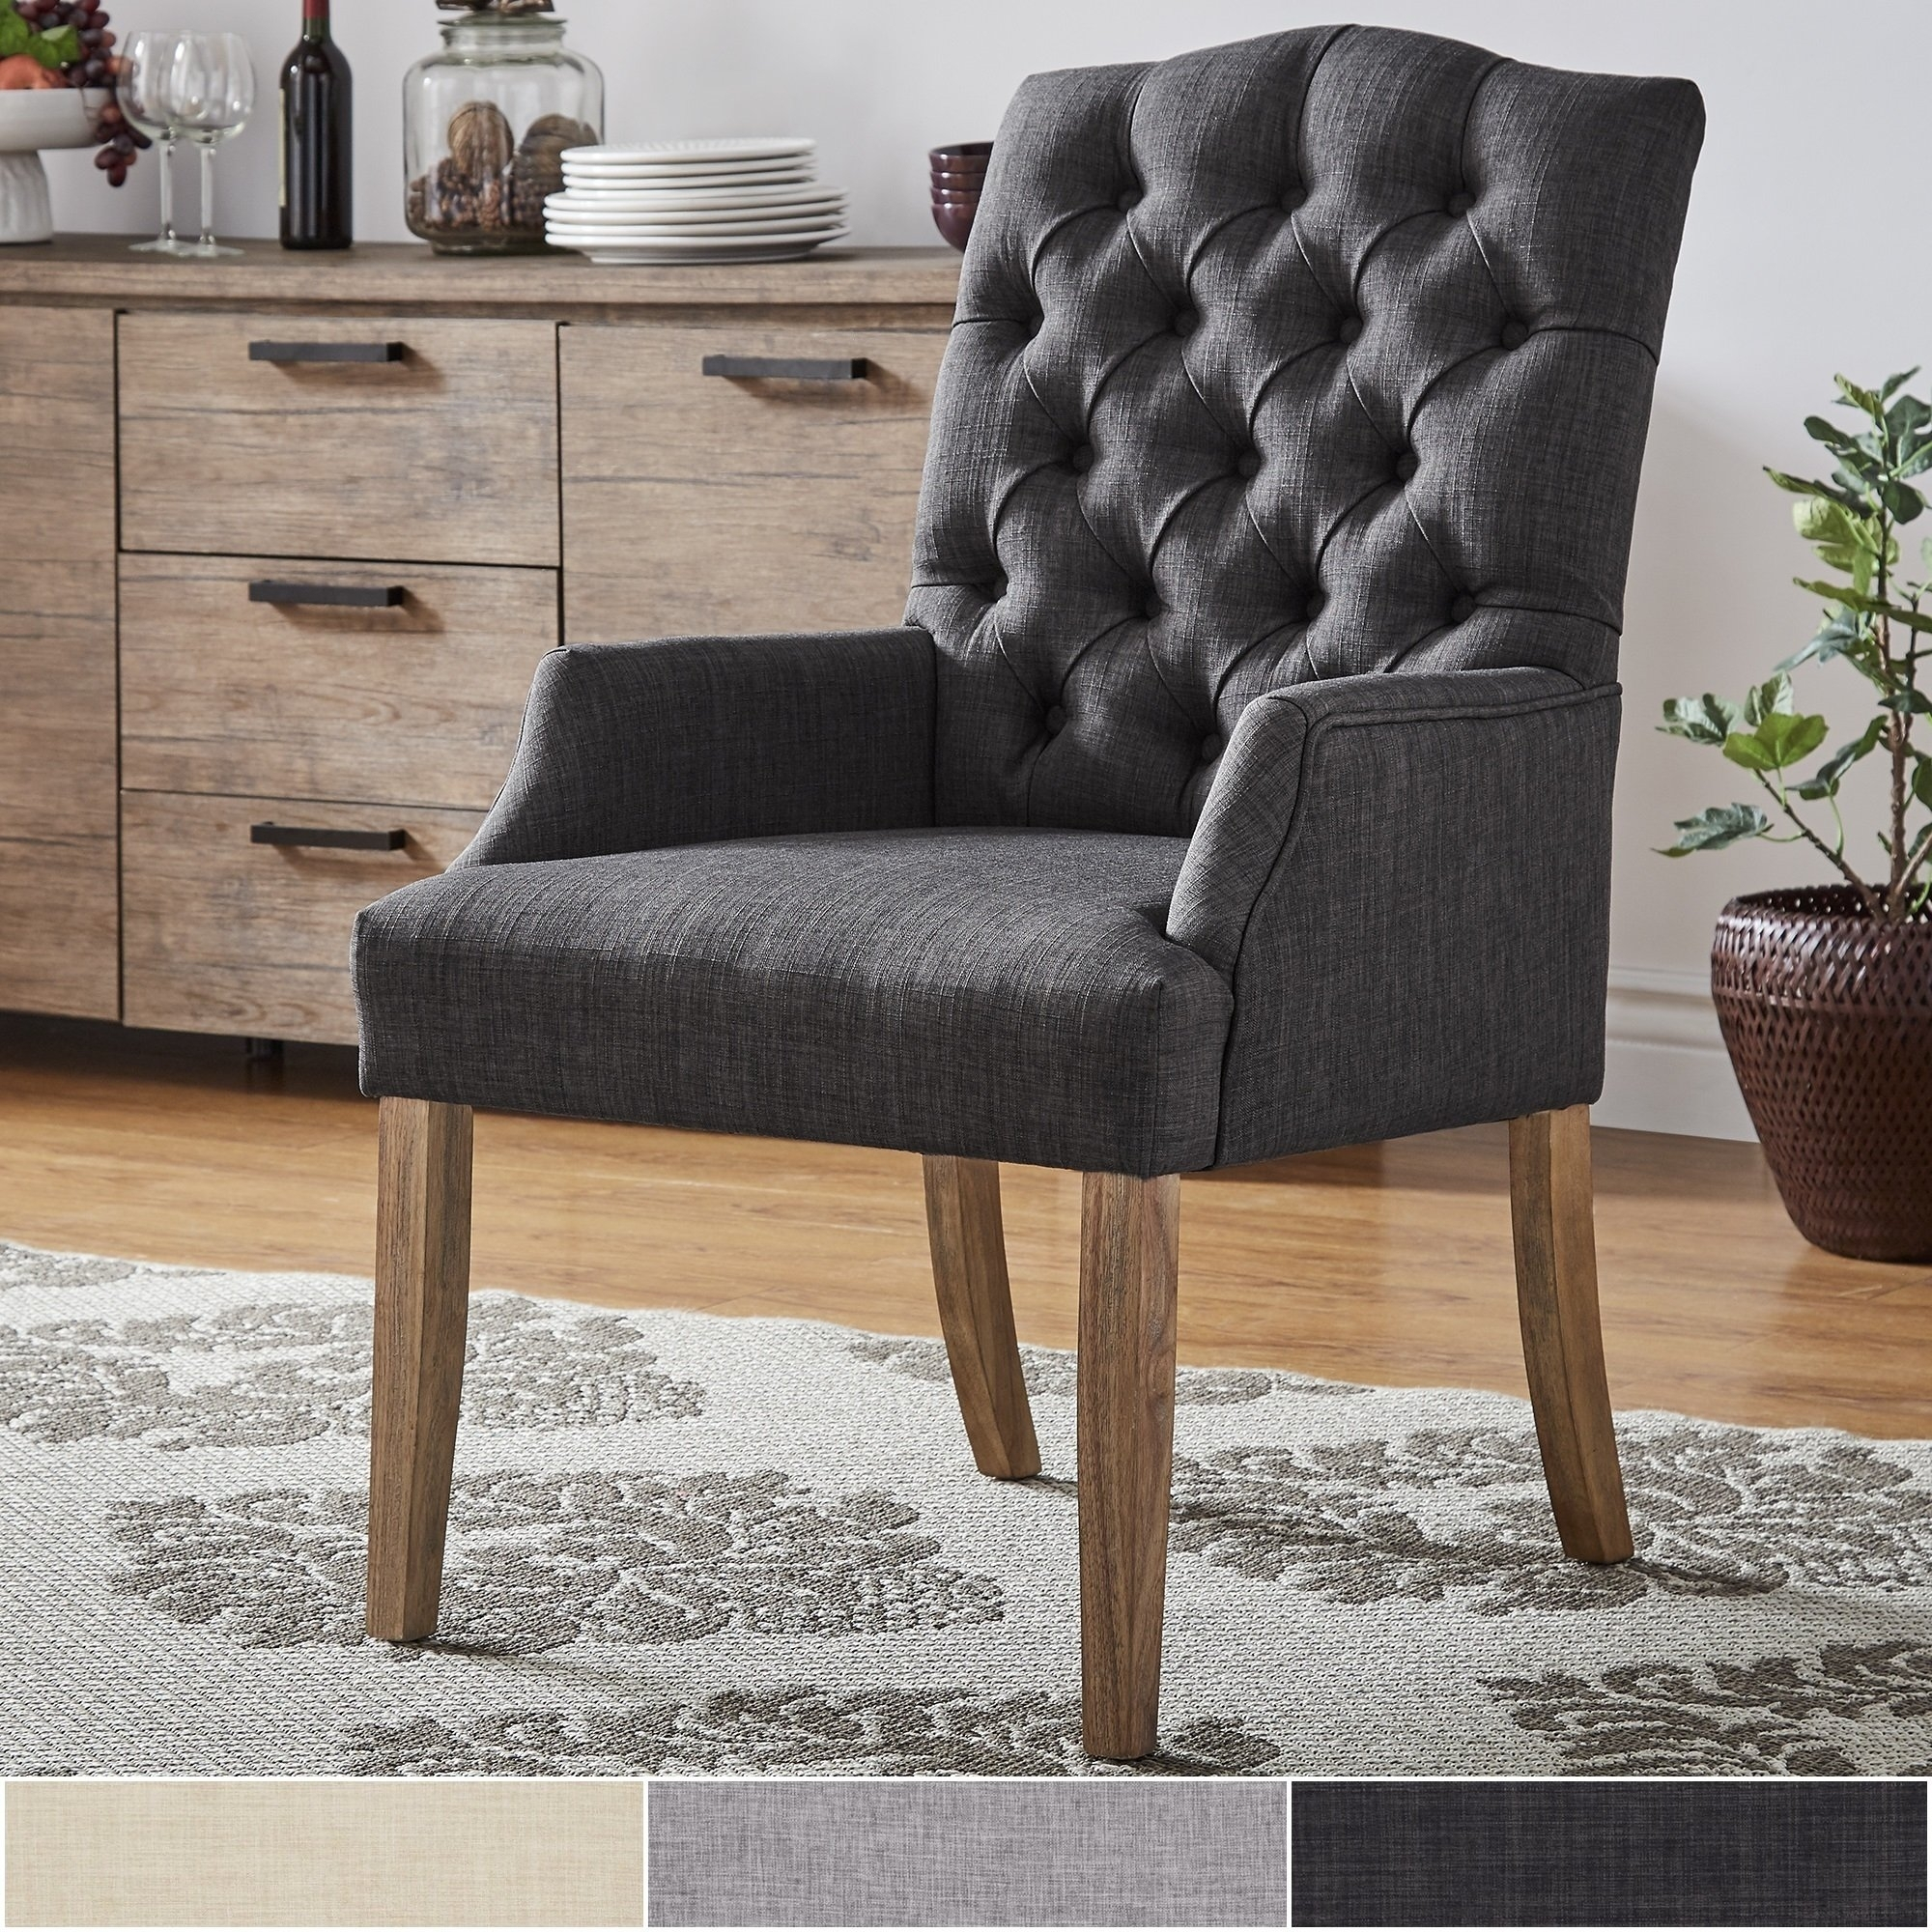 Well Liked Caira Black Upholstered Arm Chairs Inside Shop Benchwright Premium Tufted Linen Dining Arm Chairinspire Q (#20 of 20)